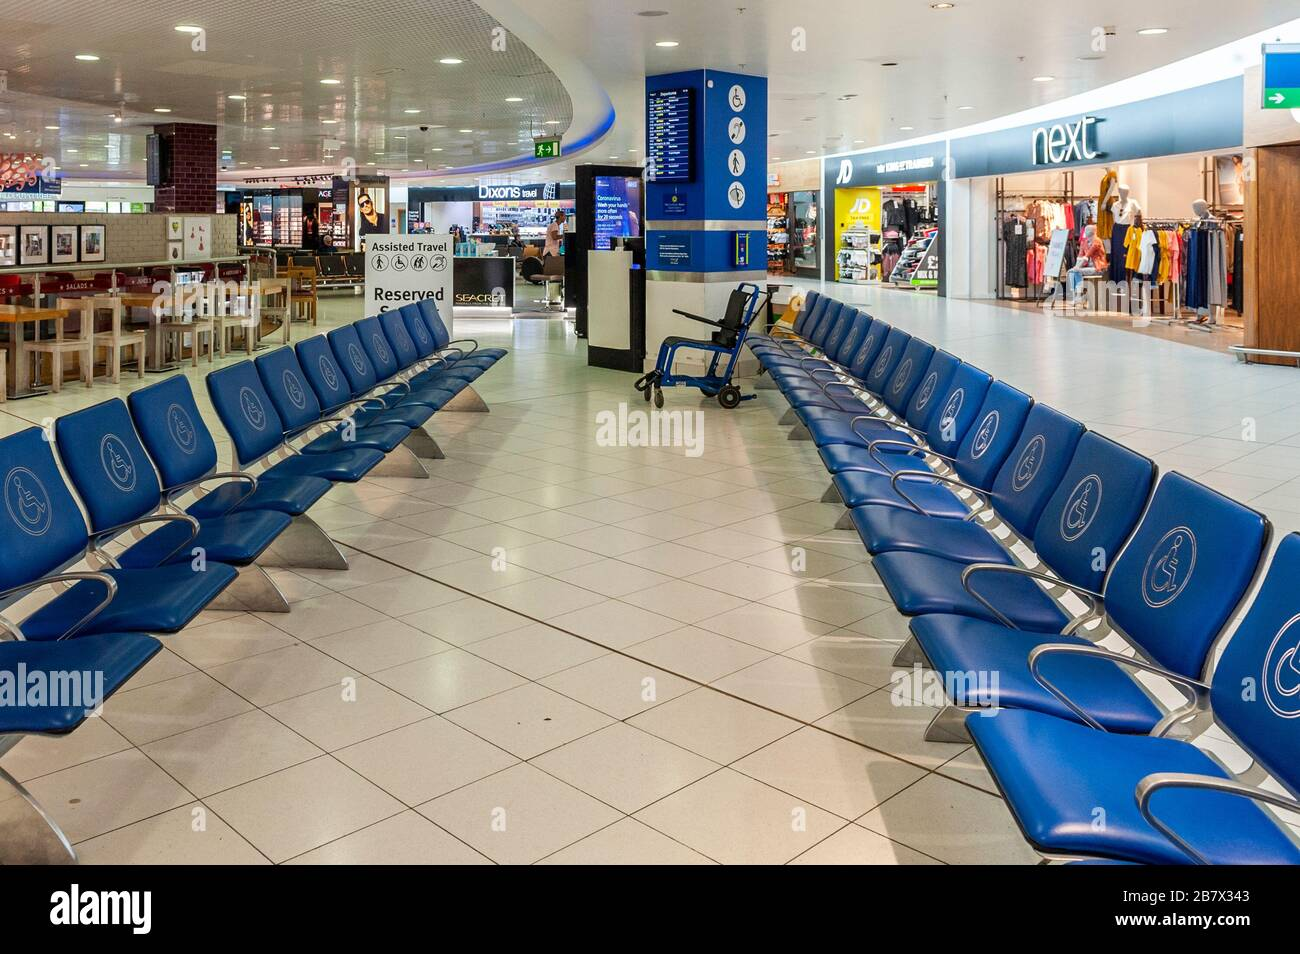 Birmingham International Airport High Resolution Stock Photography And Images Alamy